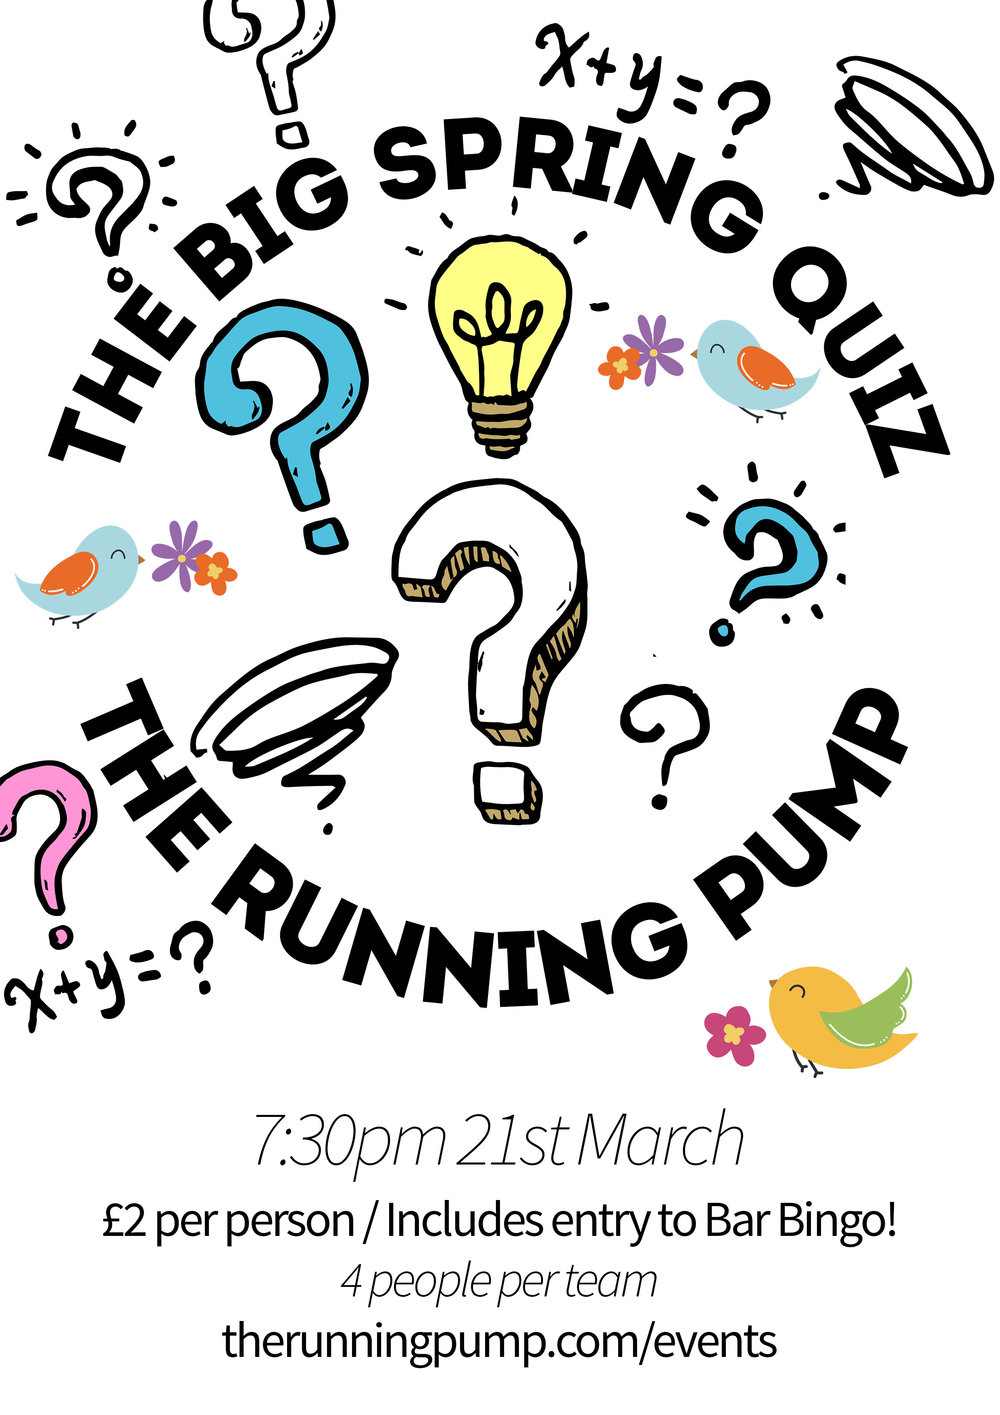 Spring Quiz - Wednesday 21st March // 7:30pm // Hosted by local compare, Vaughn // £2 Per Person // 4 People per Team